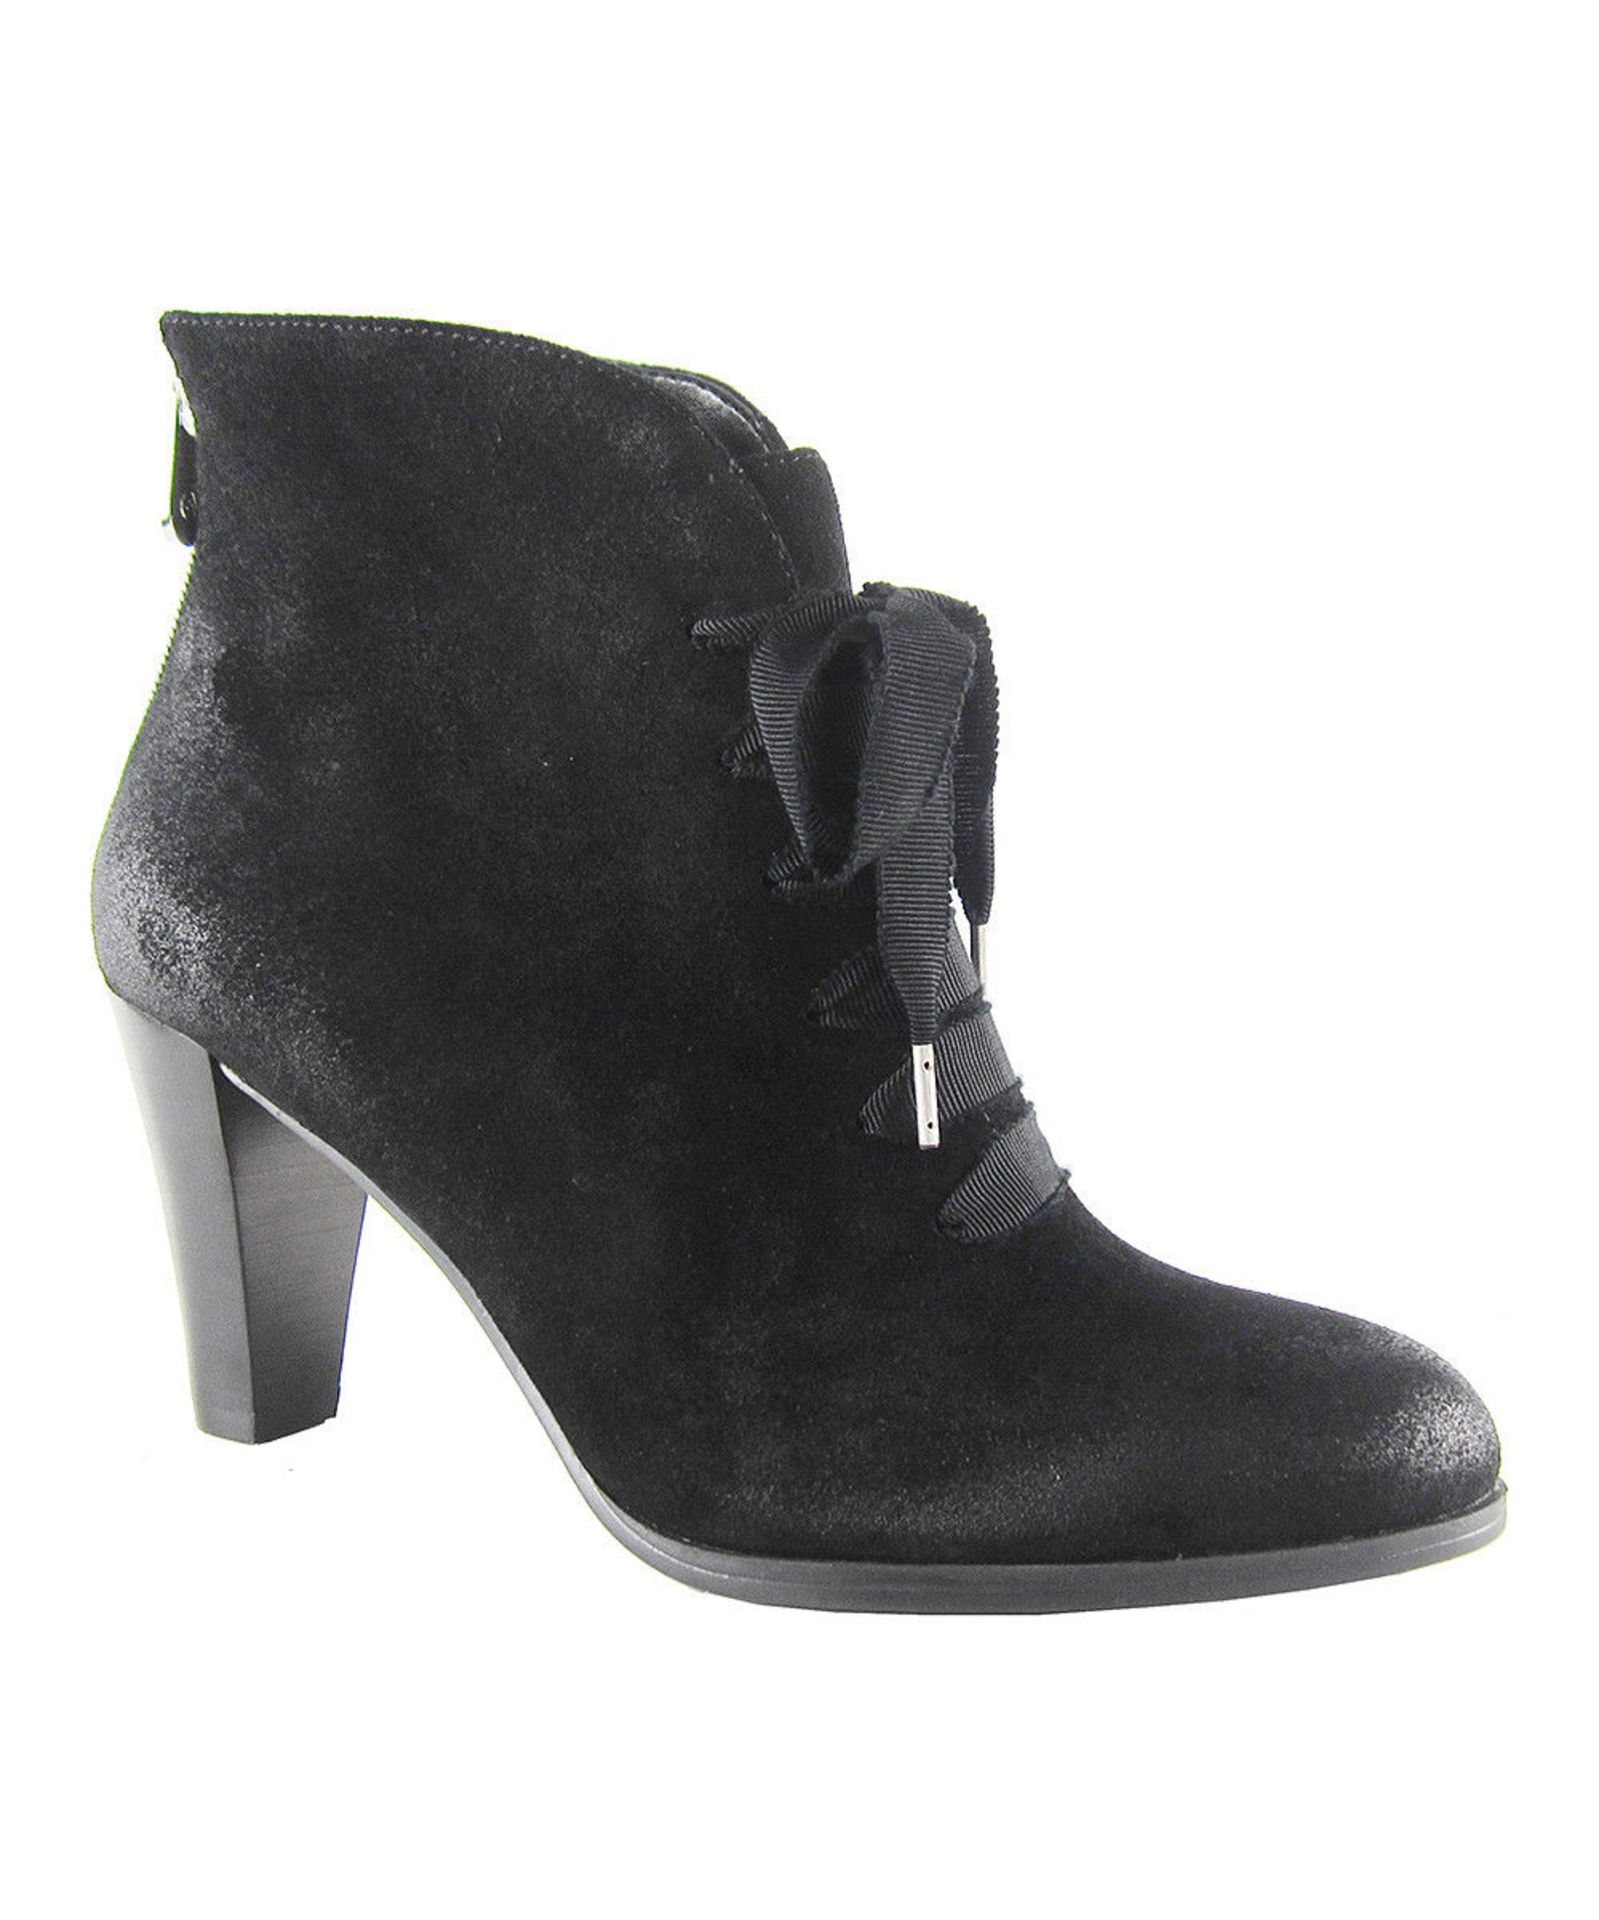 Lot 8 - Adrienne Vittadini® Black Tino Suede Bootie (Uk Size:5/Us Size:7.5) (New With Box) [Ref: 34993604-